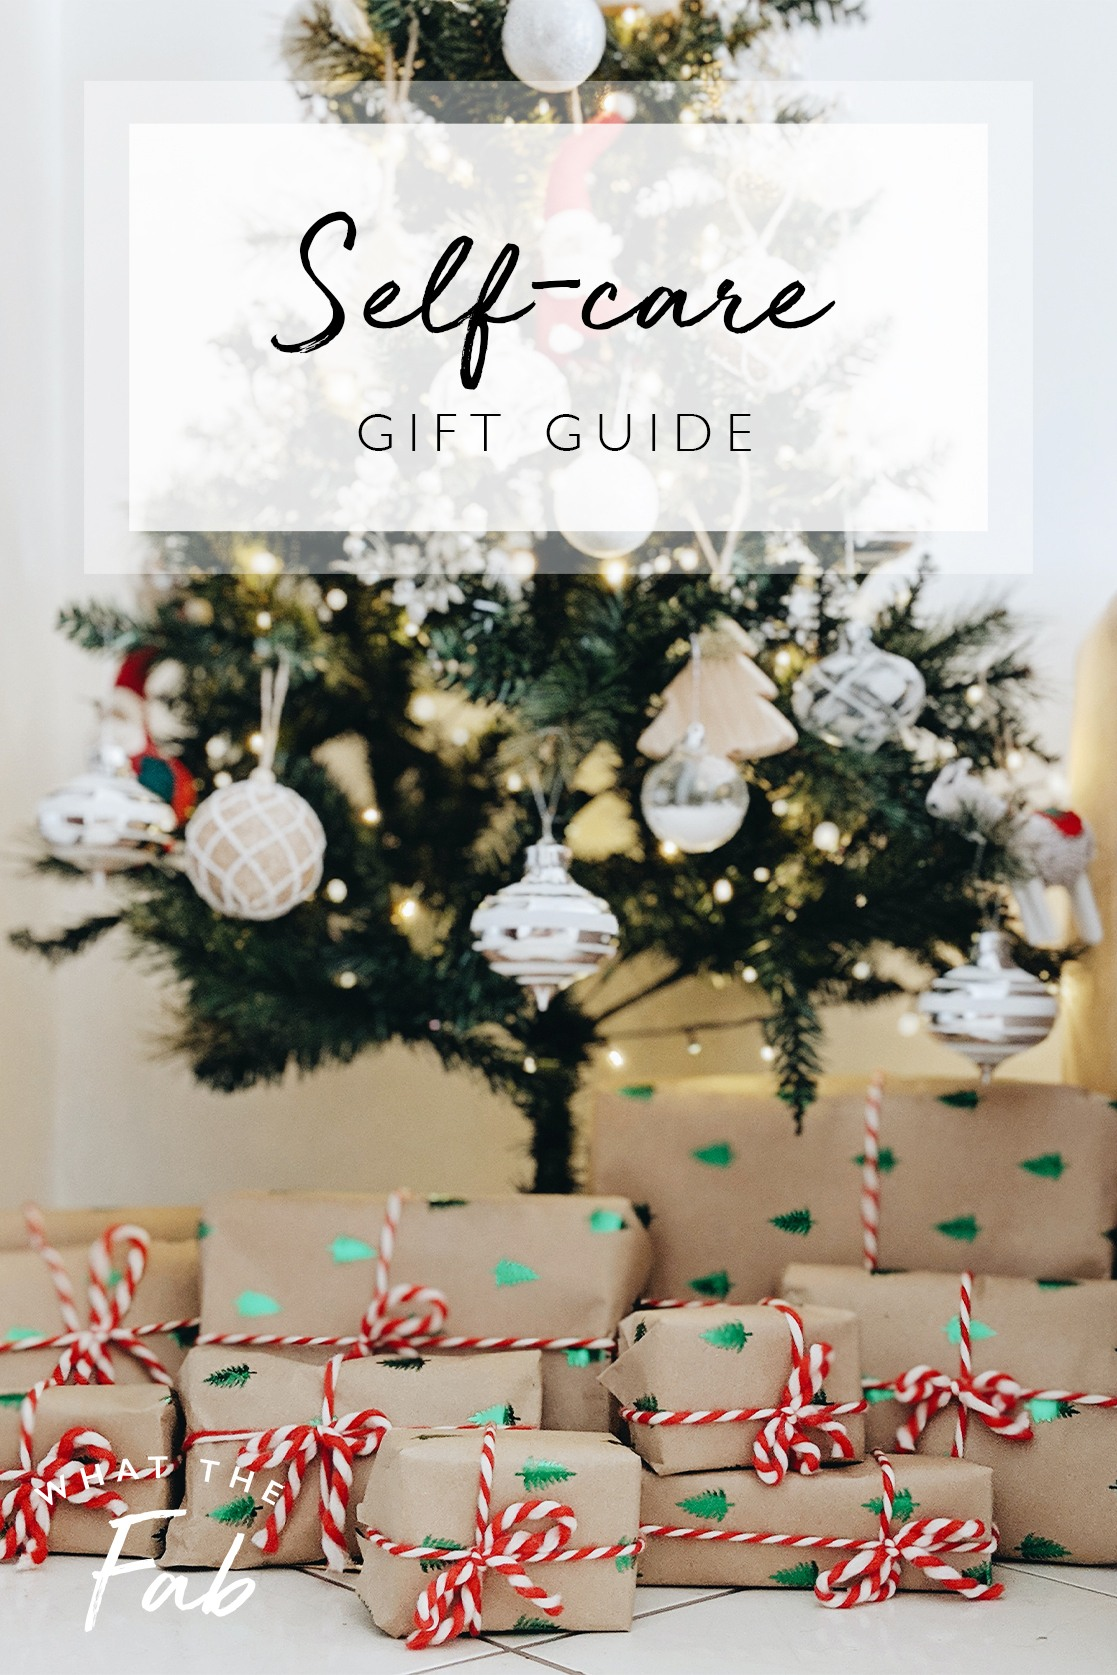 Self-care gift ideas, by lifestyle blogger What The Fab